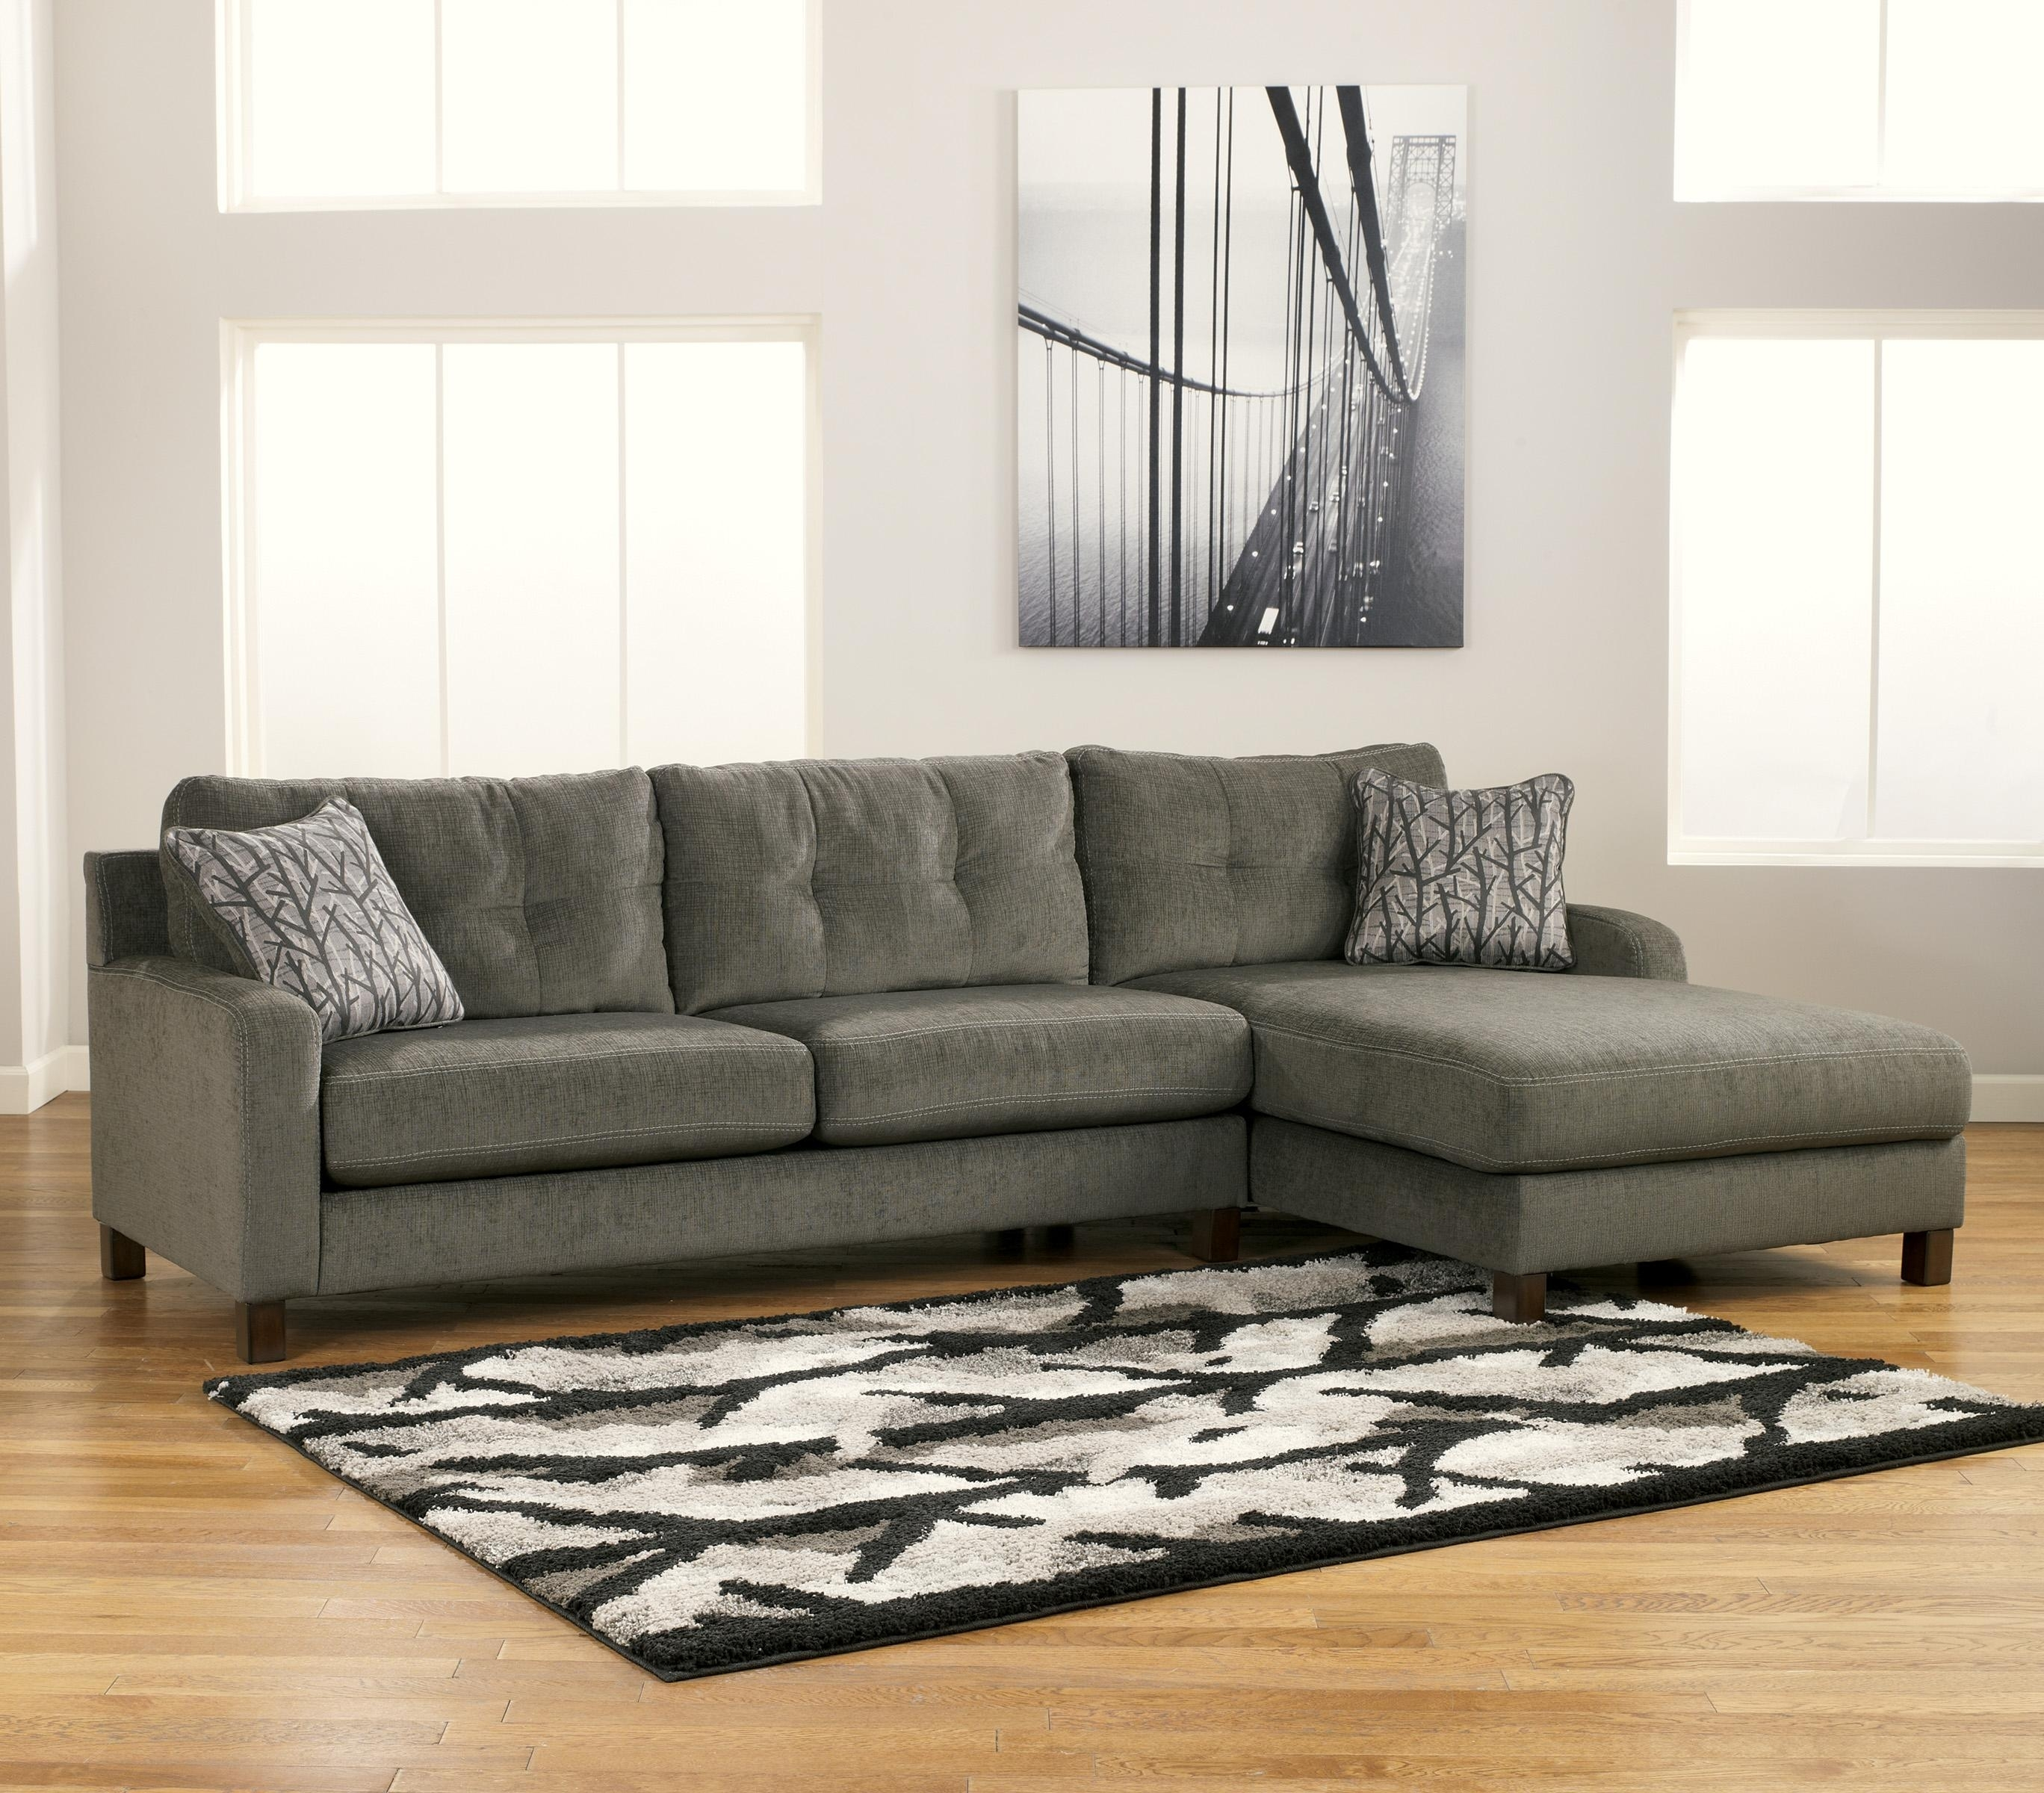 Signature Designashley Siroun – Steel Contemporary 2 Piece Inside Norfolk Grey 3 Piece Sectionals With Laf Chaise (View 18 of 25)